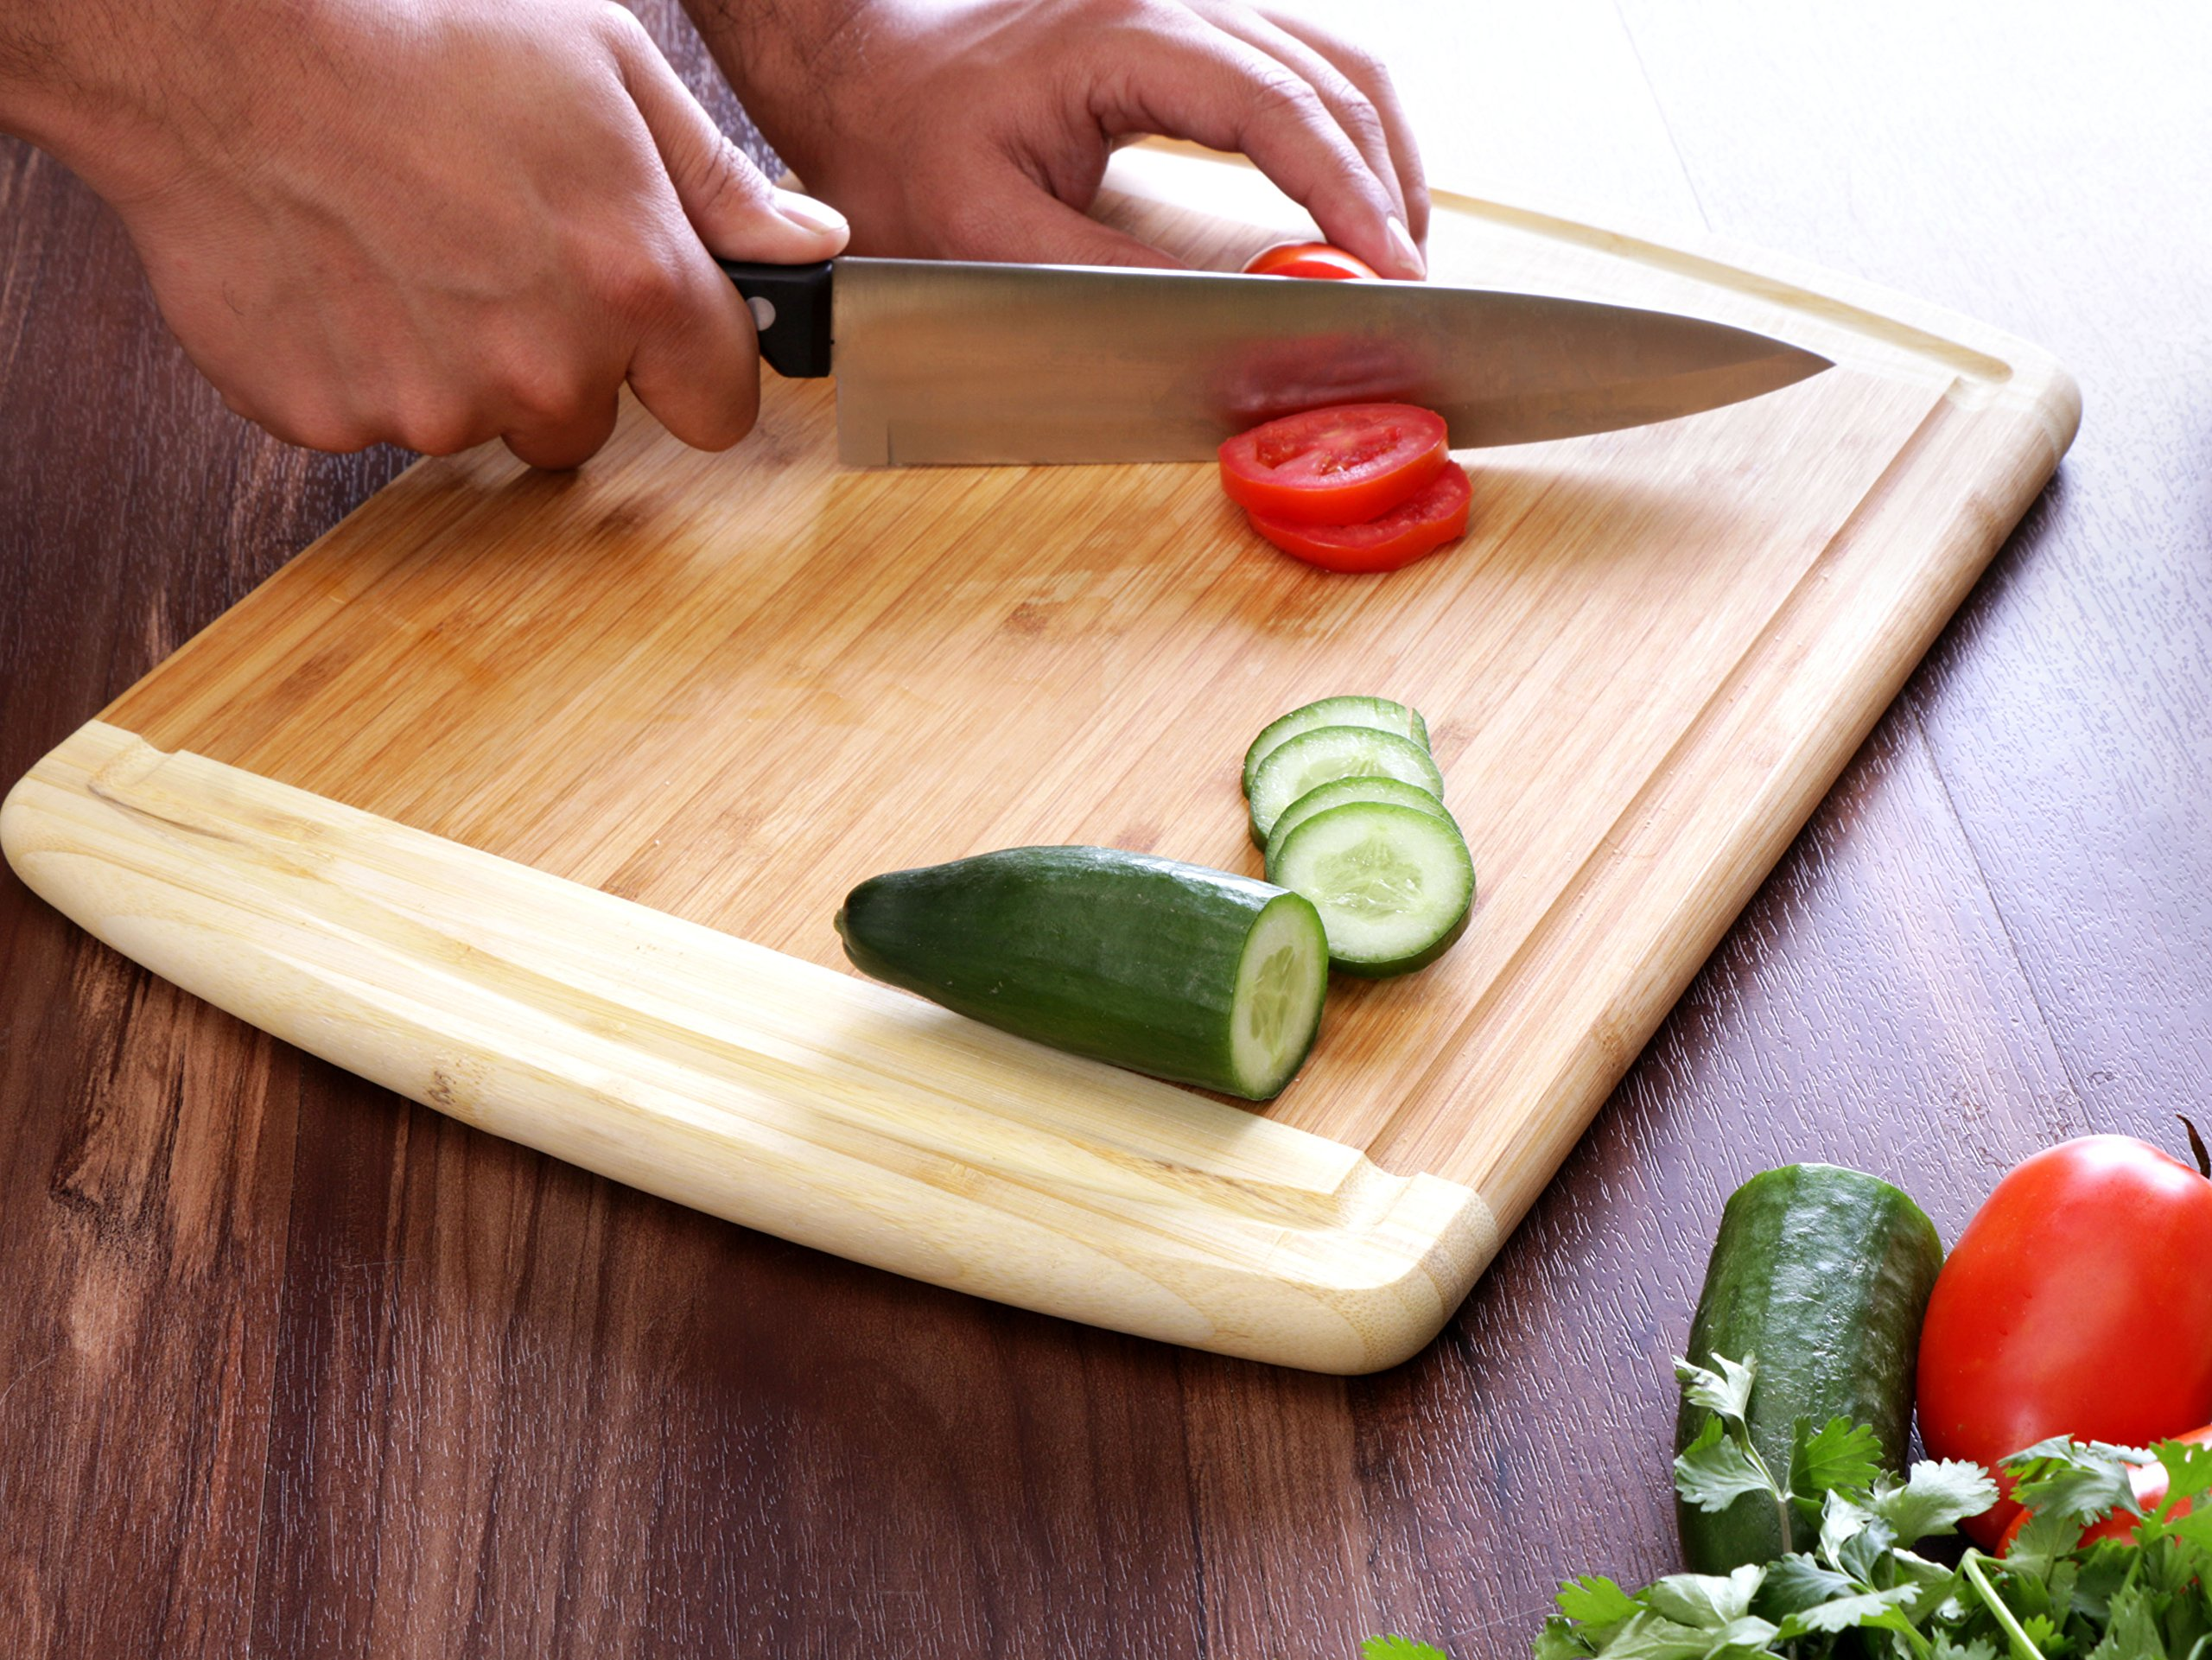 Utopia Kitchen Bamboo Cutting Board Large Bamboo Cutting Board for Chicken, Meat, and Vegetables by Utopia Kitchen (Image #6)